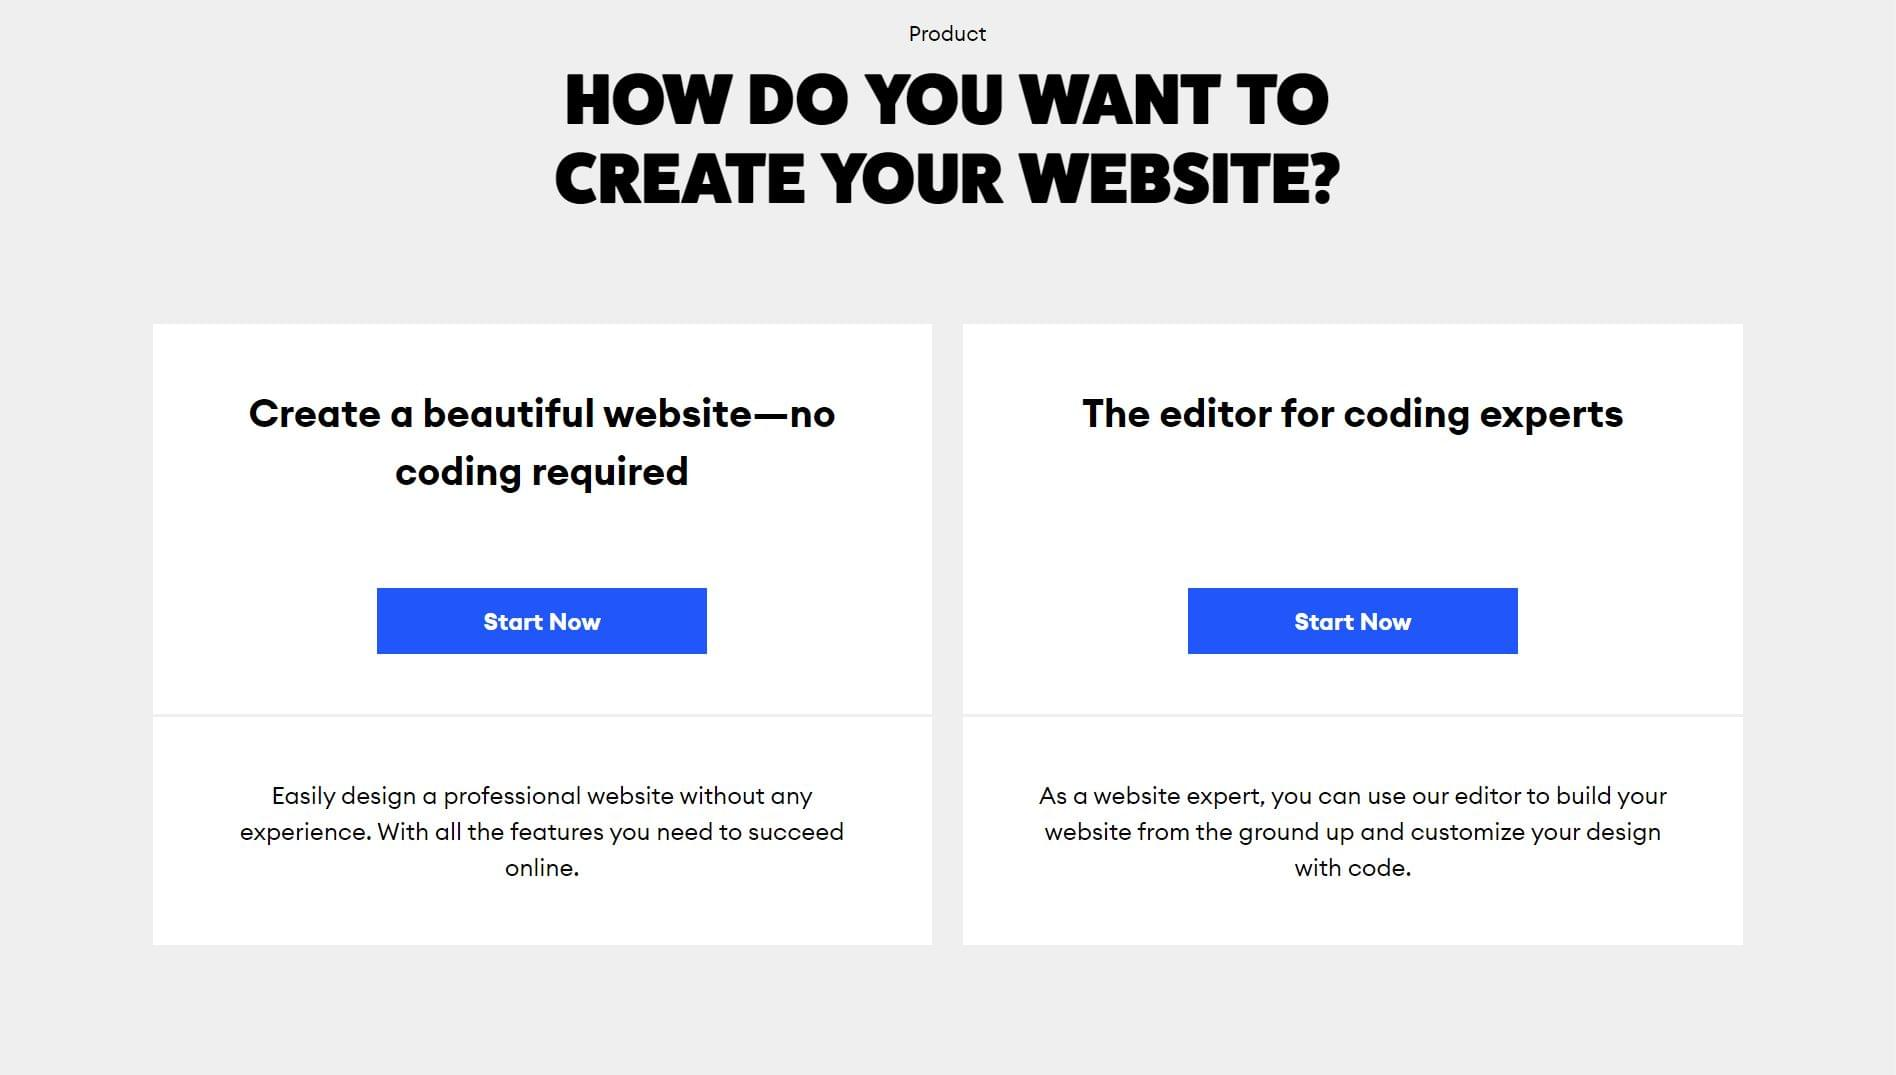 How do you want to create your website?